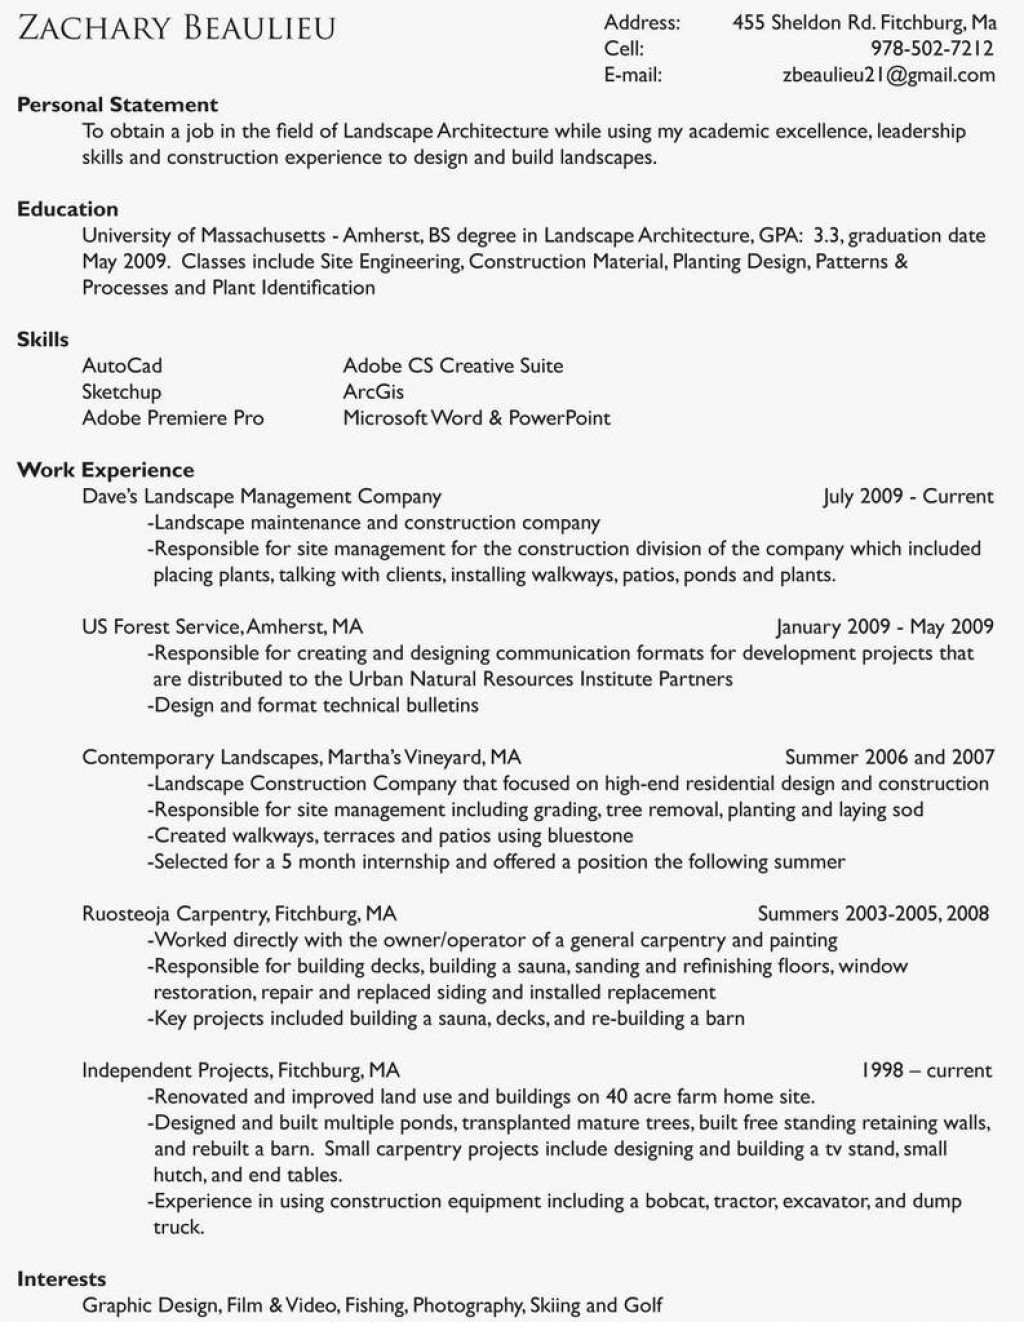 011 Esthetician Resume Skills Inspirational Business Management Essay Topics Writing Service Unethical Of Research Paper Communication Impressive For Large